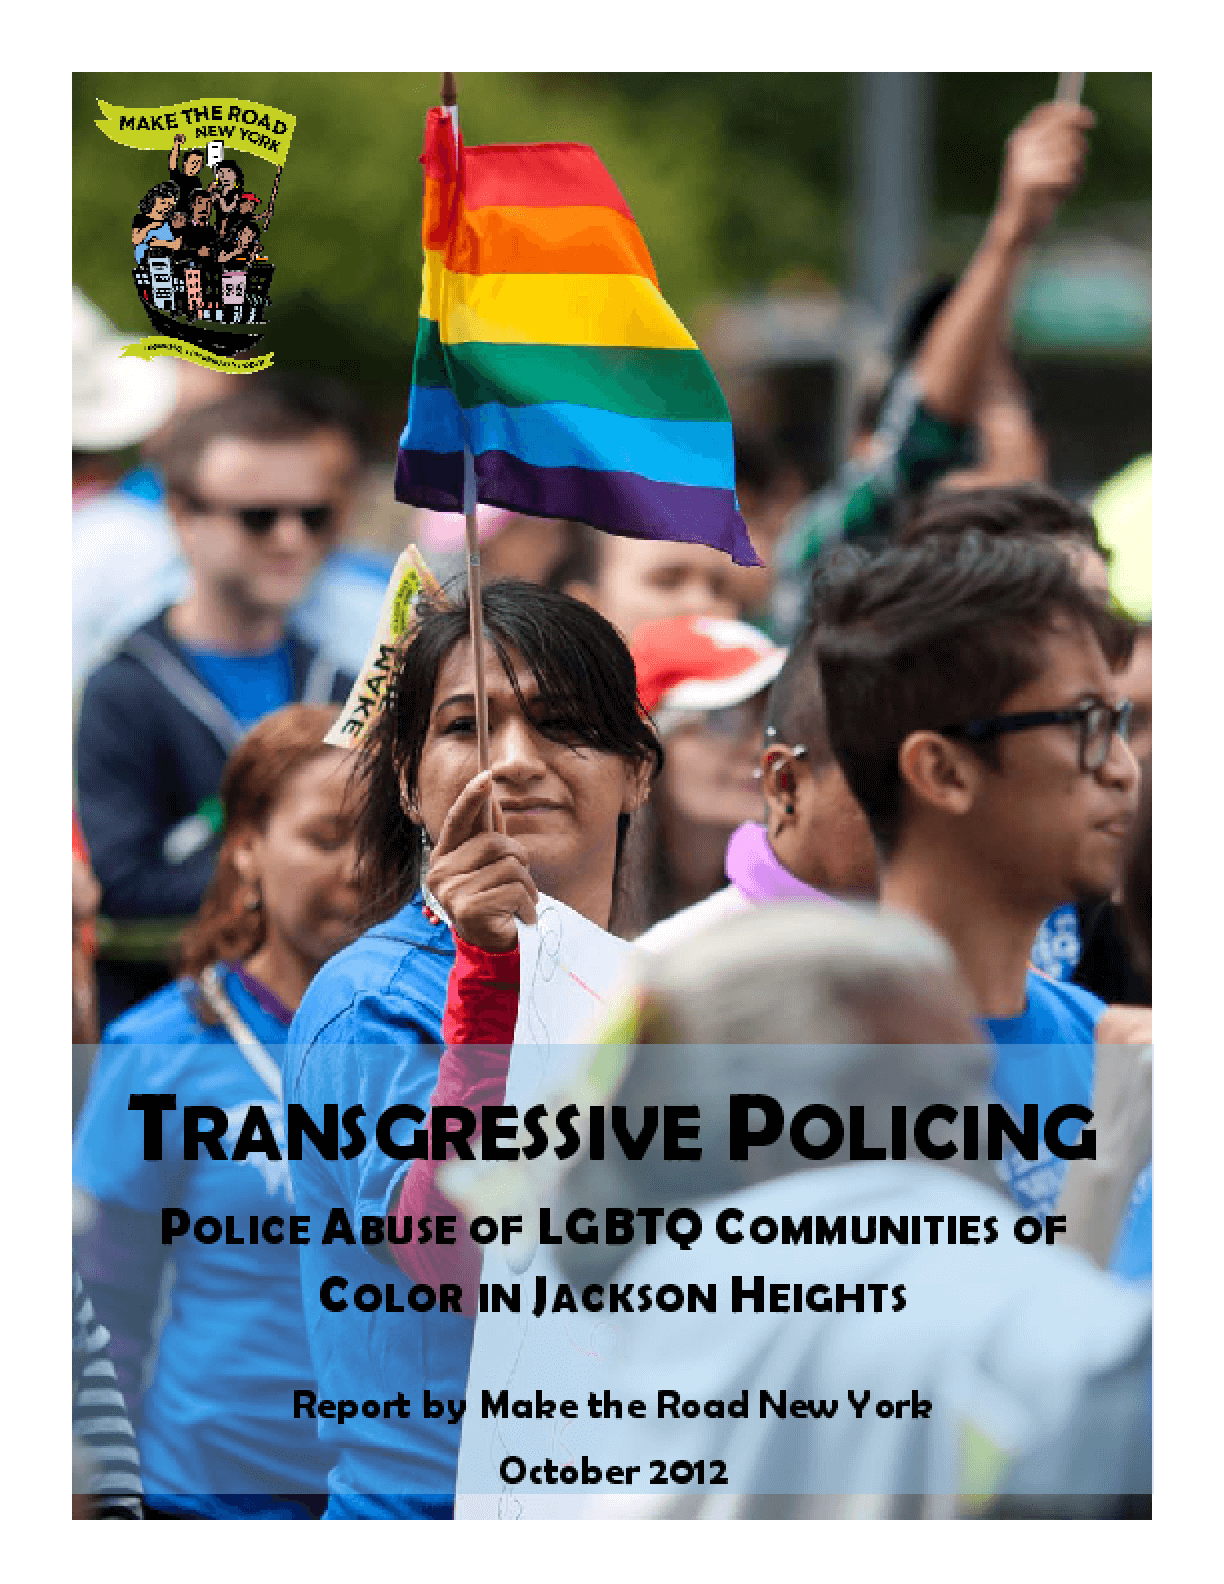 Transgressive Policing: Police Abuse of LGBTQ Communities of Color in Jackson Heights, Queens